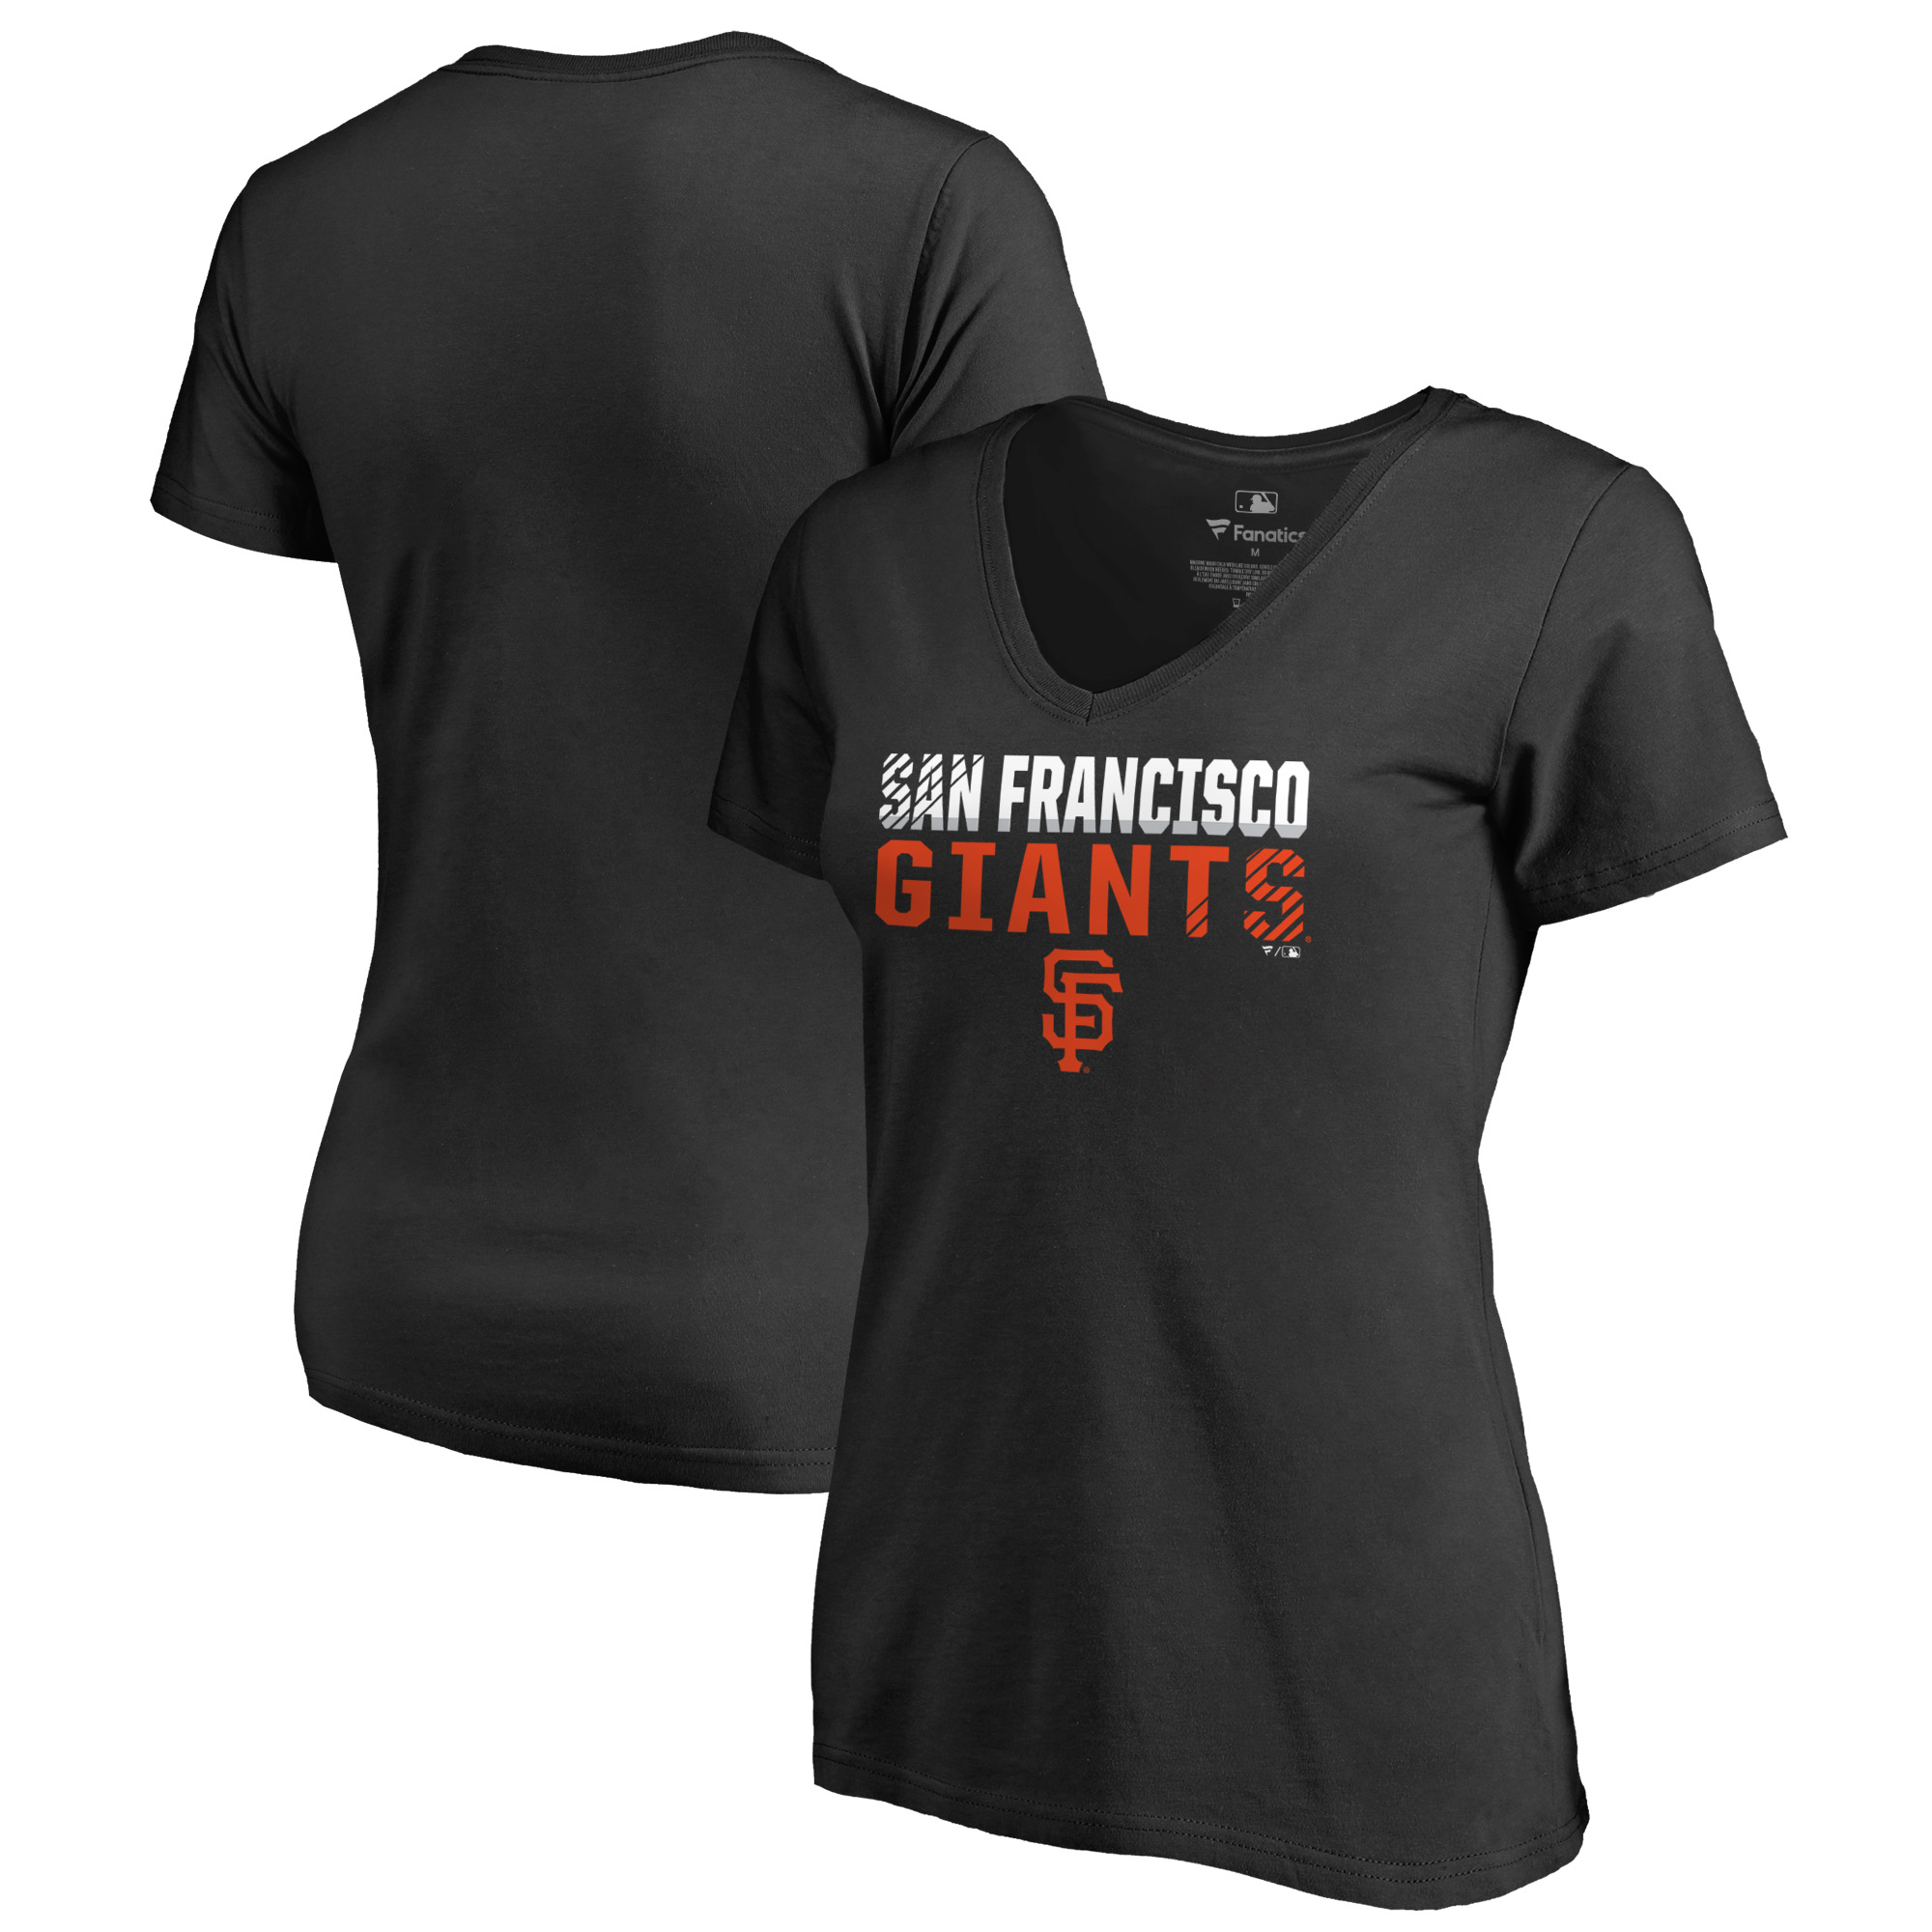 San Francisco Giants Fanatics Branded Women's Fade Out V-Neck T-Shirt - Black